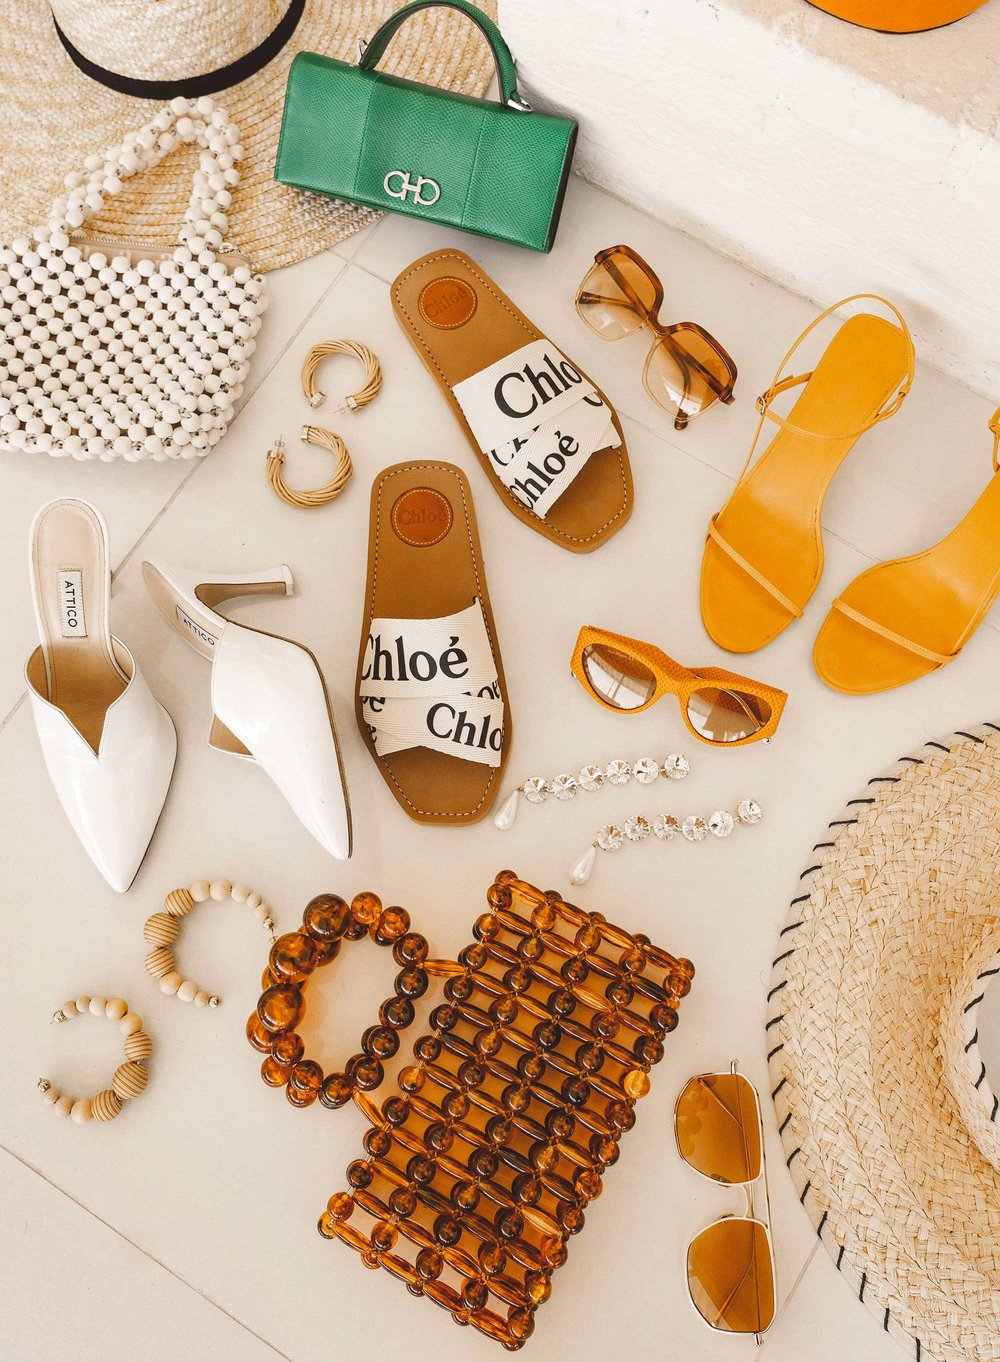 11 spring accessories to buy now:  THE ROW Nude Asymmetric Leather Sandals, Cult Gaia acrylic clutch , ROSANTICA beaded tote in Palm Springs | @sarahchristine - 18.jpeg